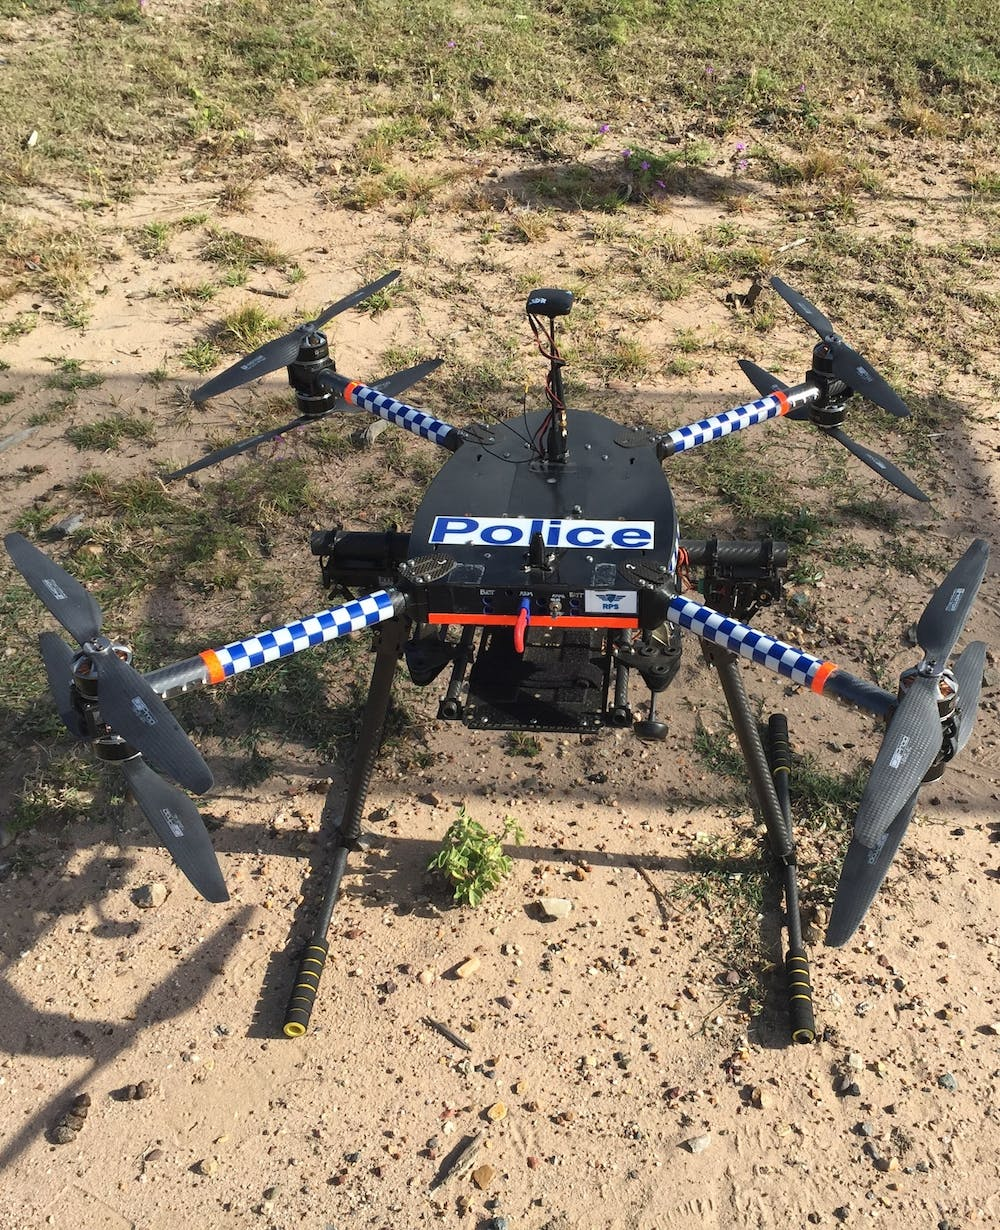 Police militarisation takes off with weaponised crowd-control drones